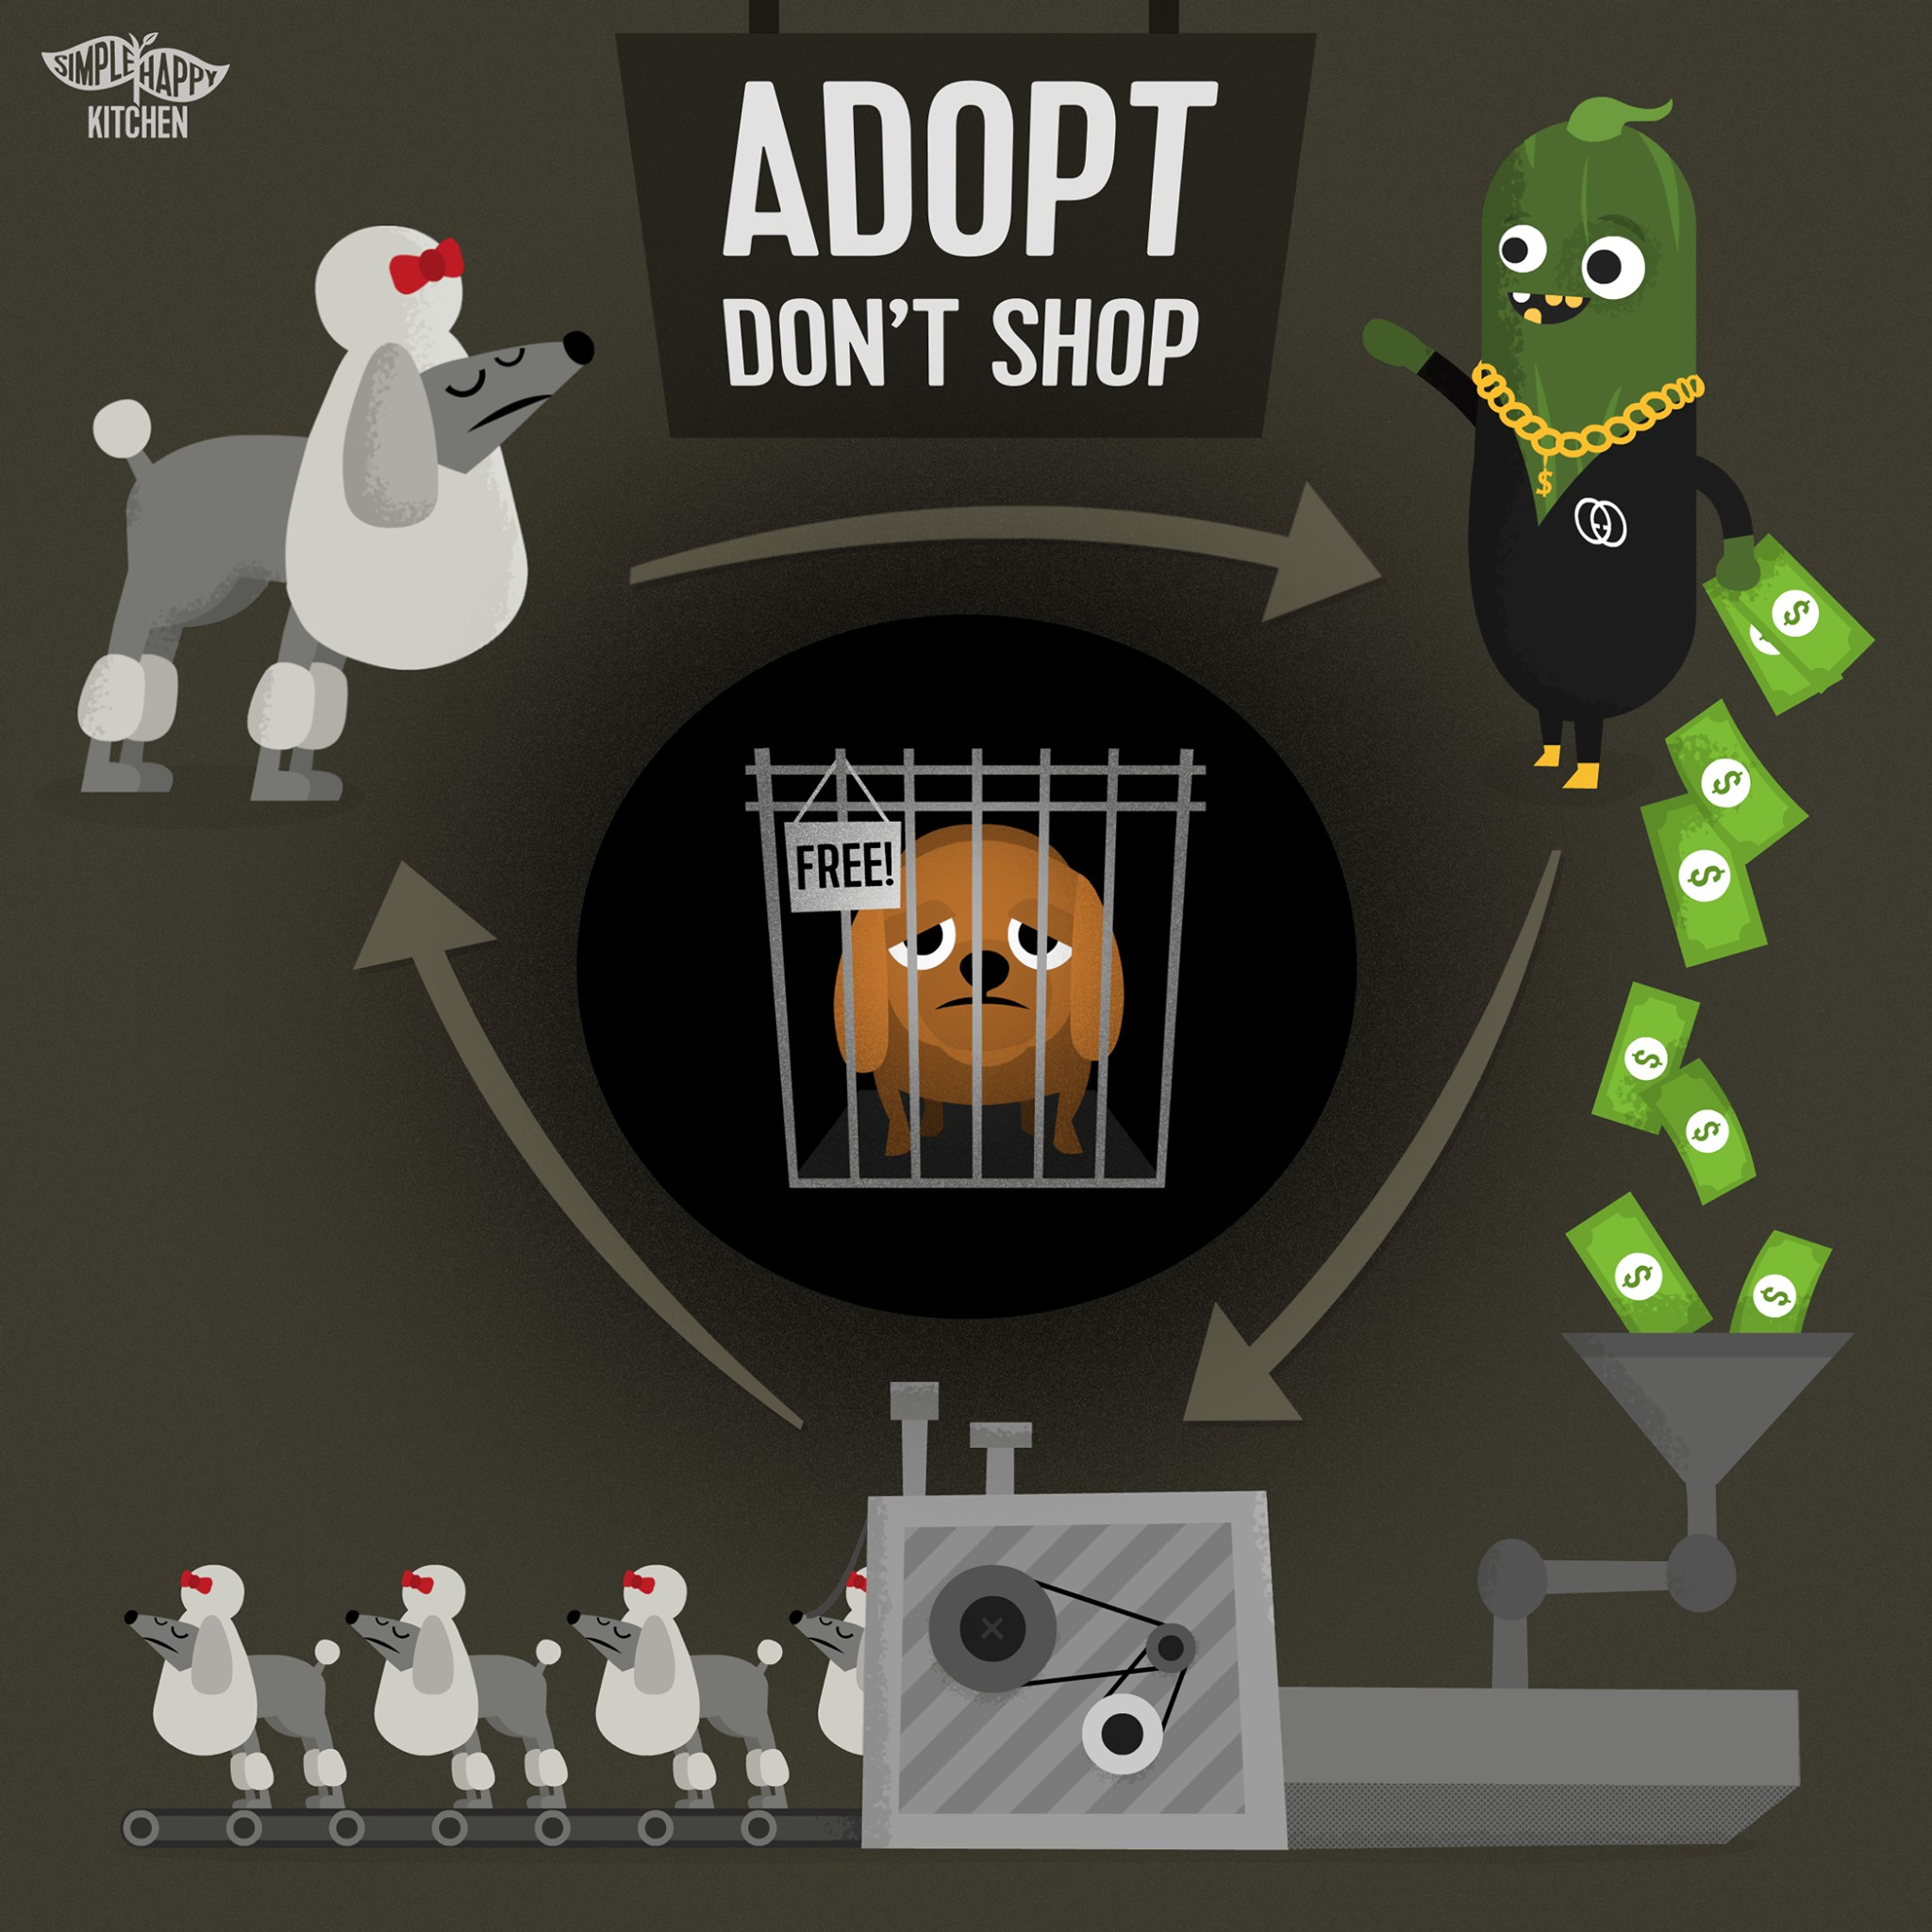 Happy international dog day! Let's celebrate by adopting, not shopping